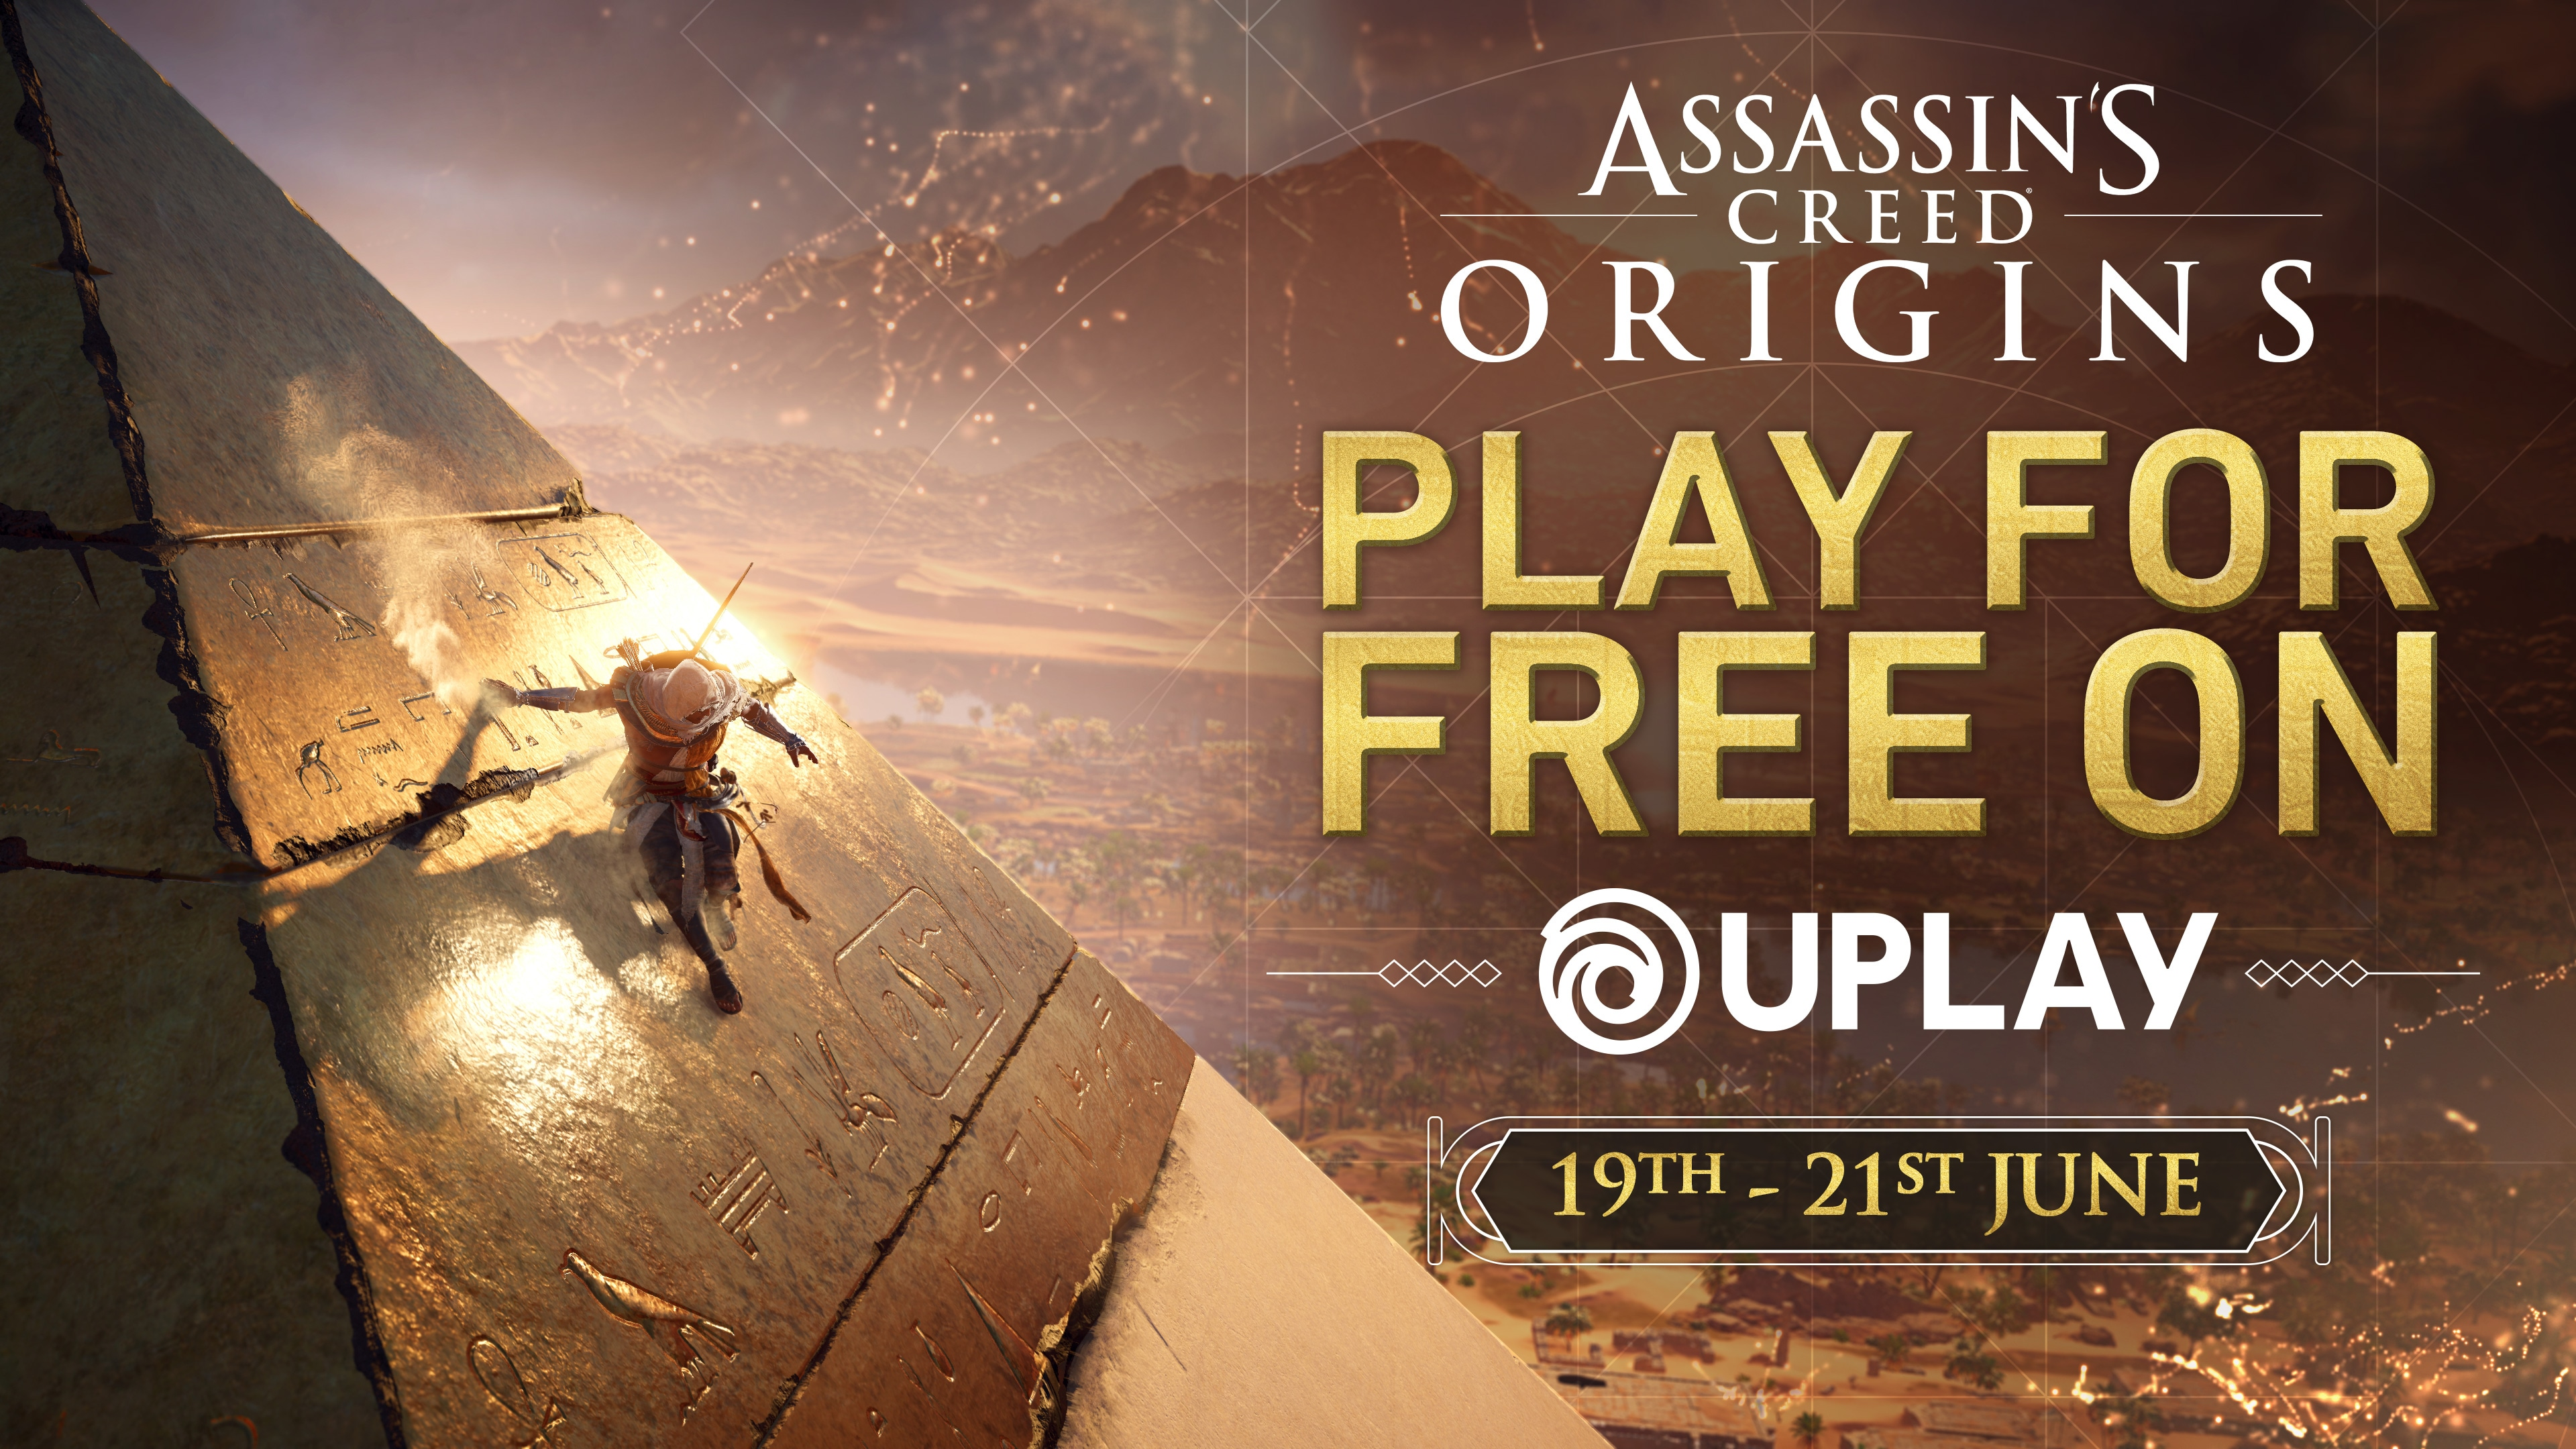 PLAY ASSASSIN'S CREED ORIGINS FOR FREE ON UPLAY THIS WEEKEND